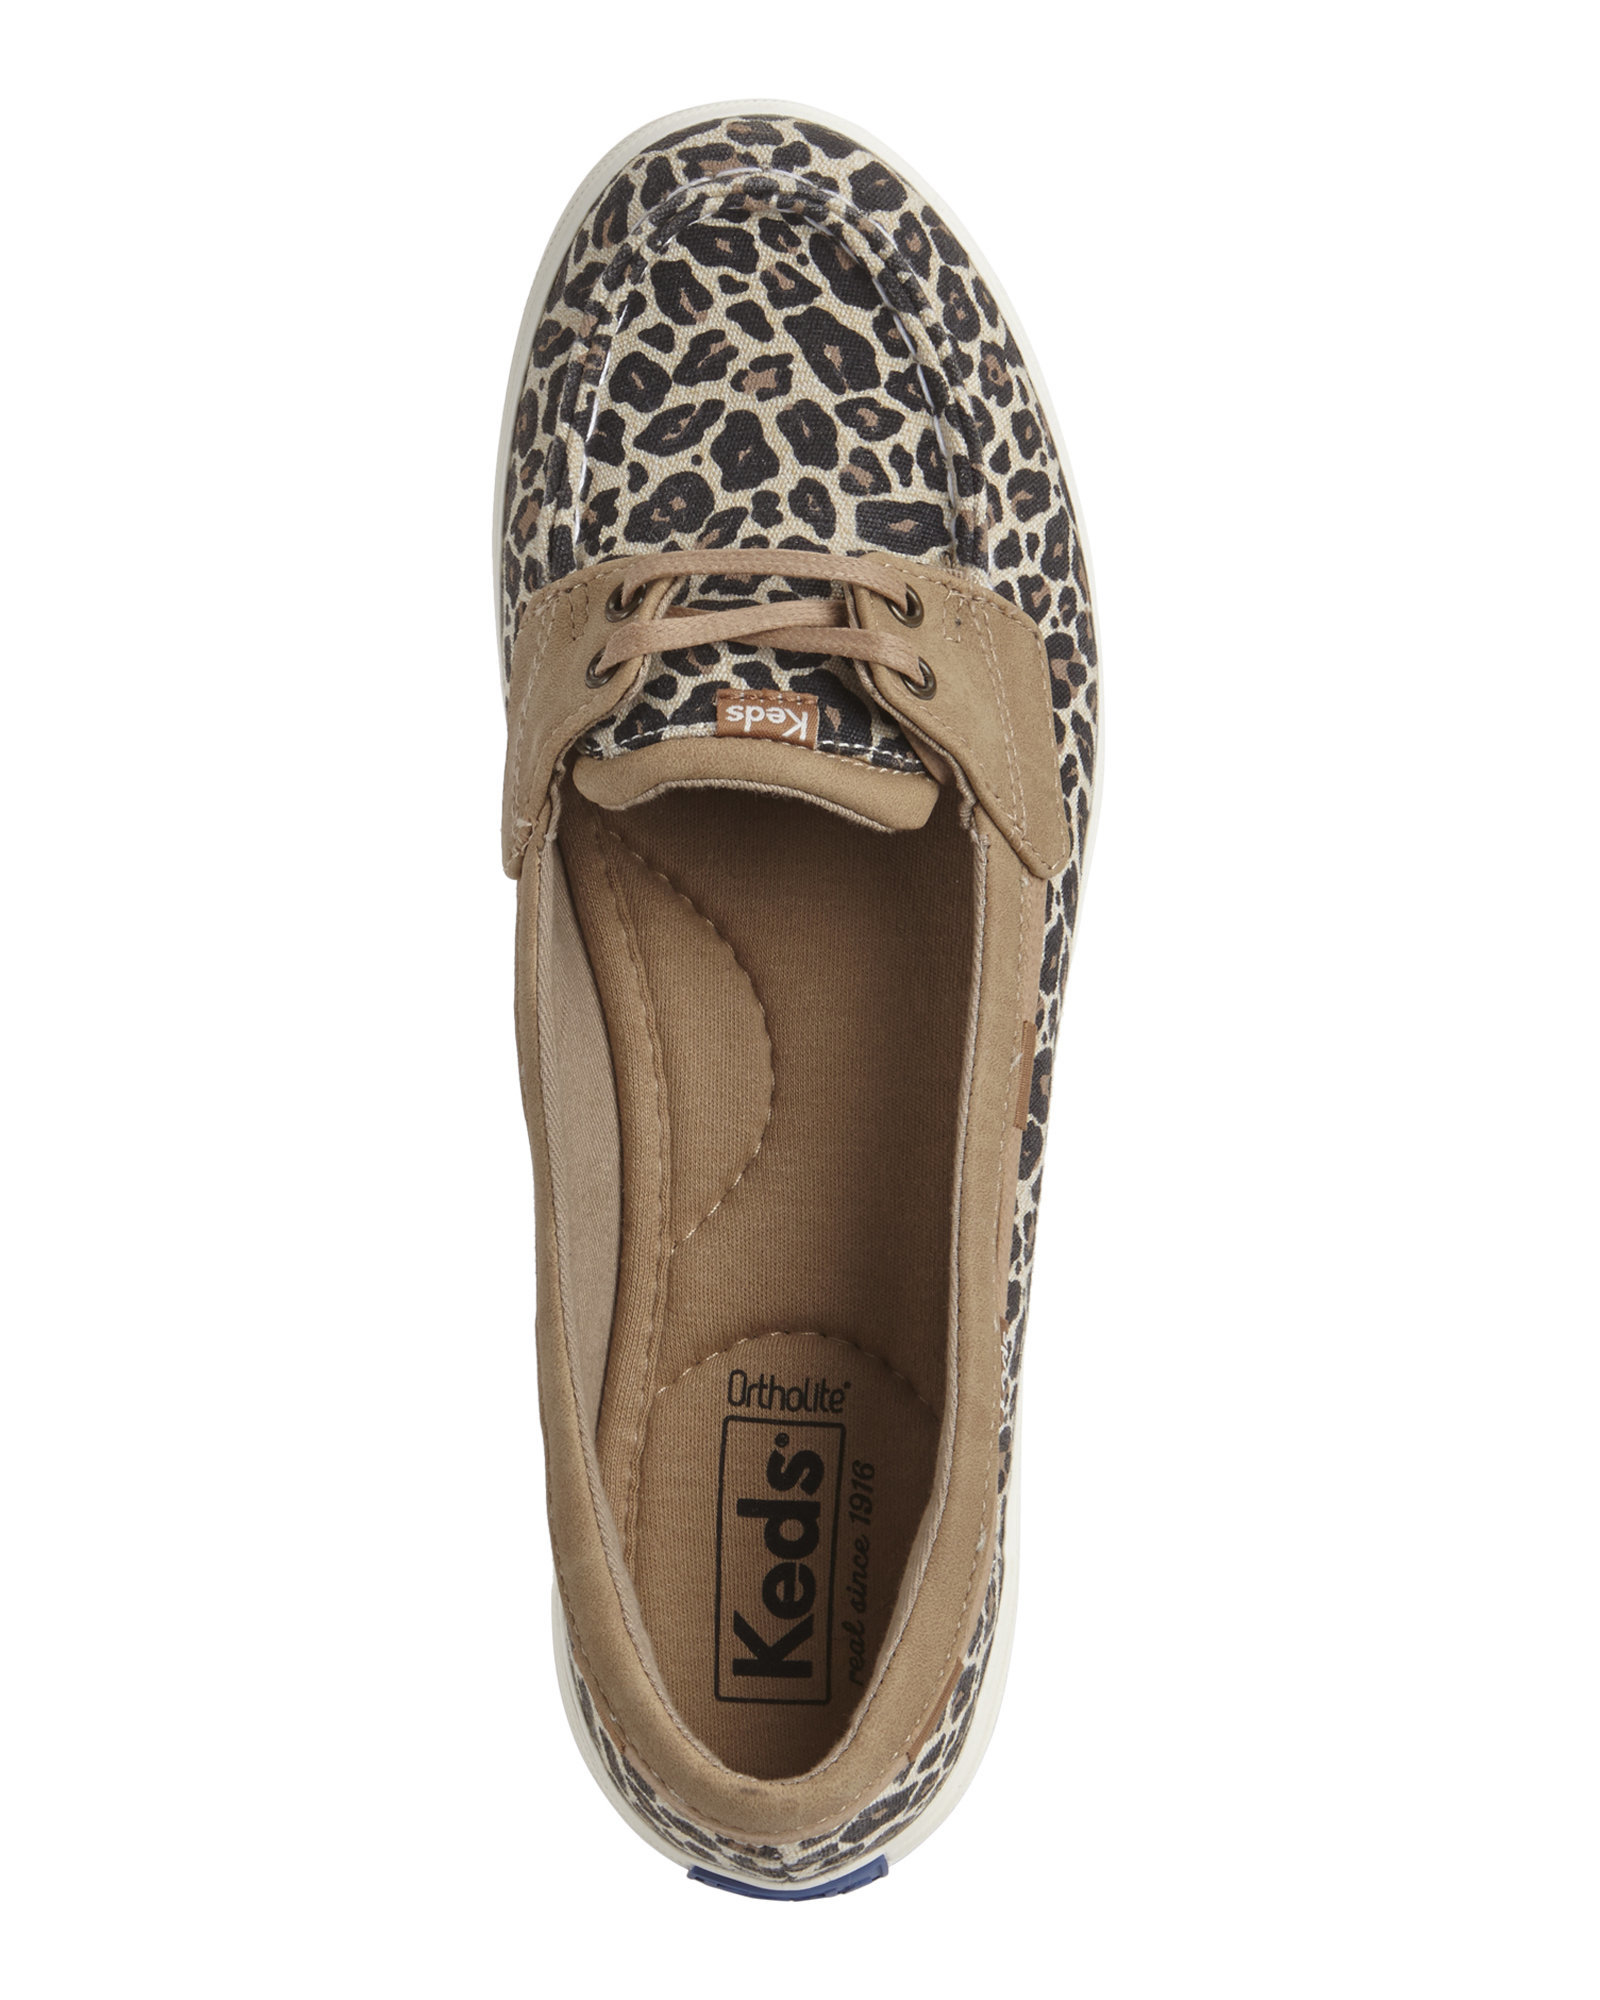 50938bf2 Keds Leopard & Tan Glimmer Boat Shoes - Lyst